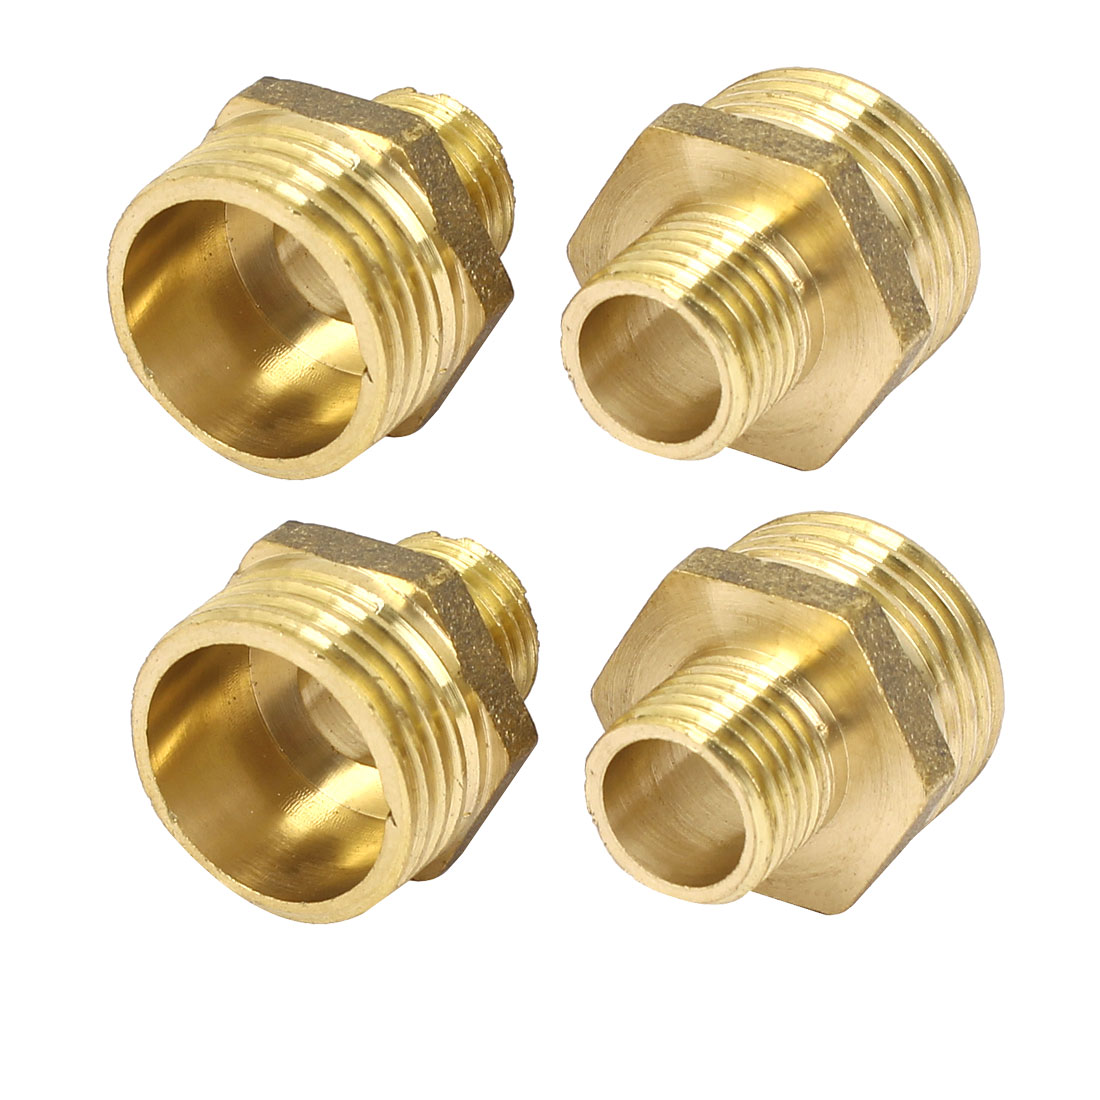 1/2BSP to 1/4BSP Male Thread Brass Hex Nipple Pipe Fittings Gold Tone 4 Pcs